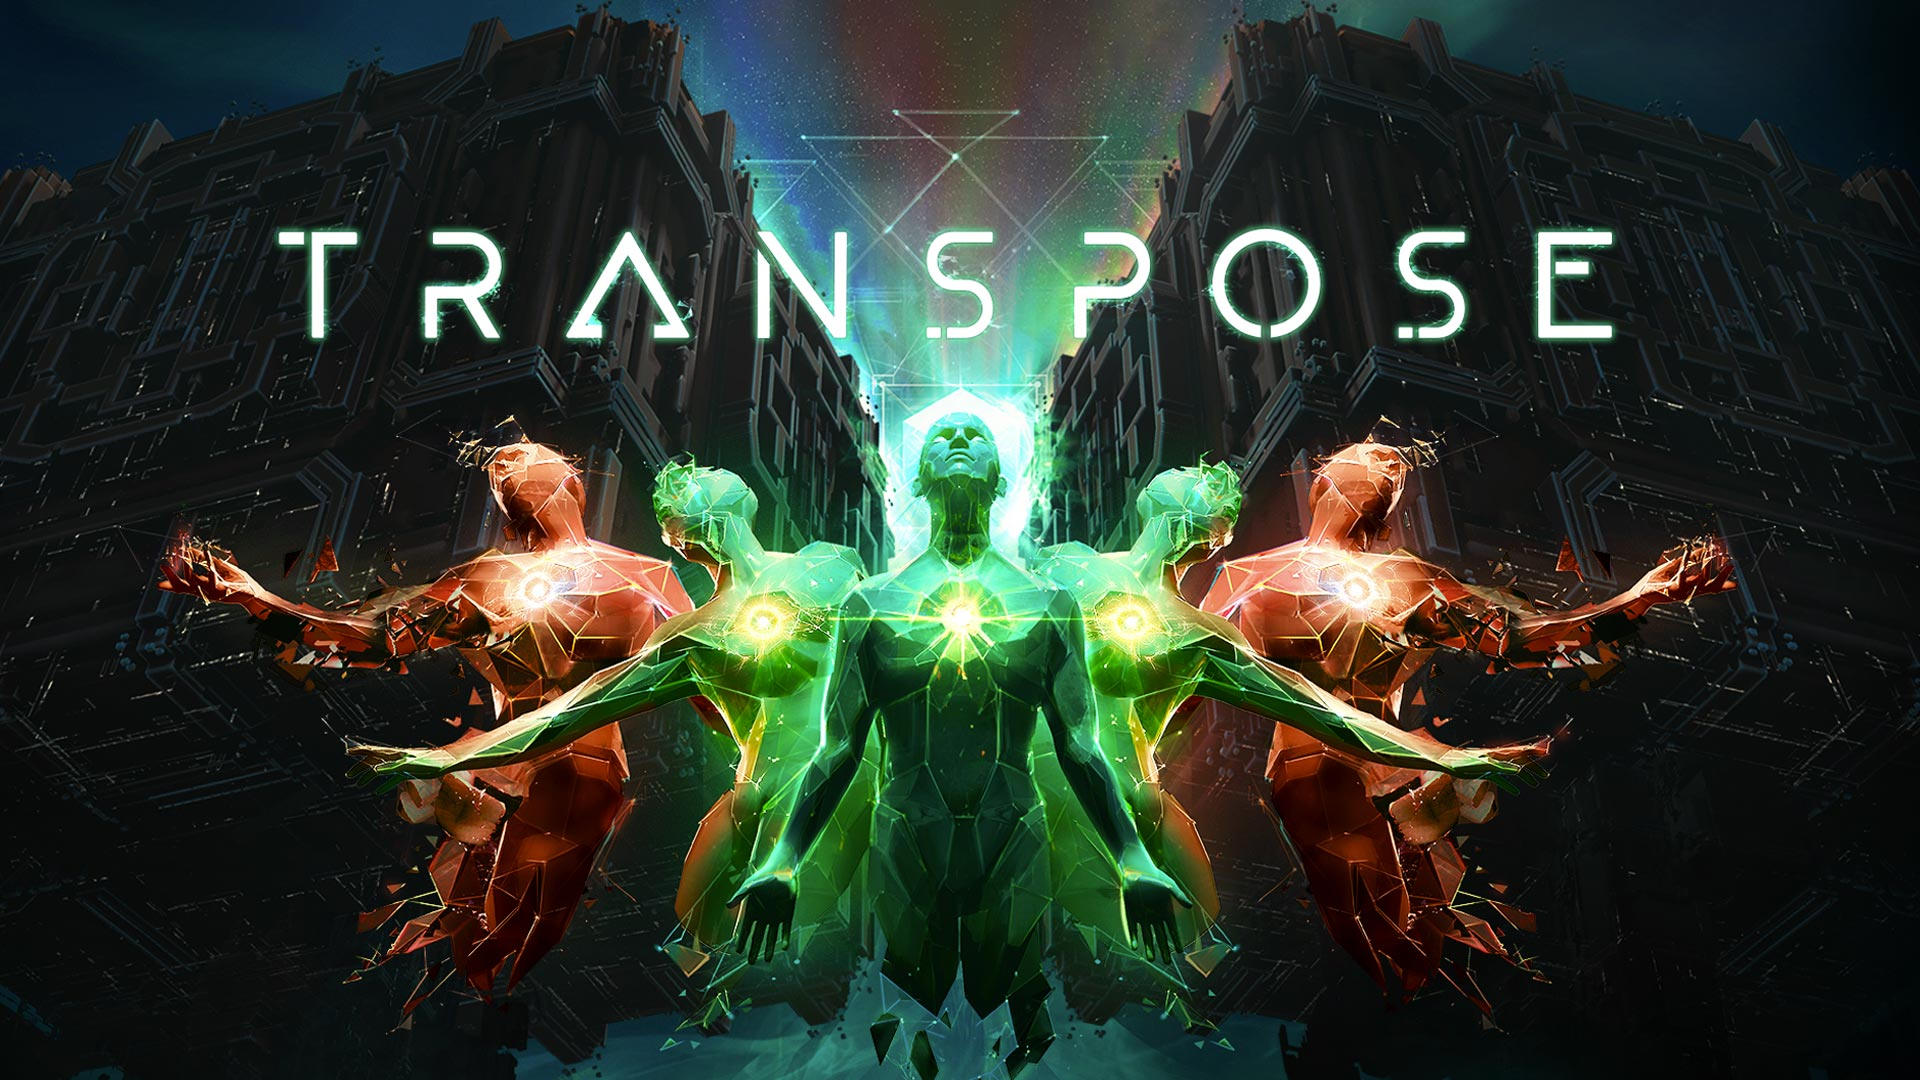 'Transpose' Review: Spatial Puzzles Perfect for an Army of One